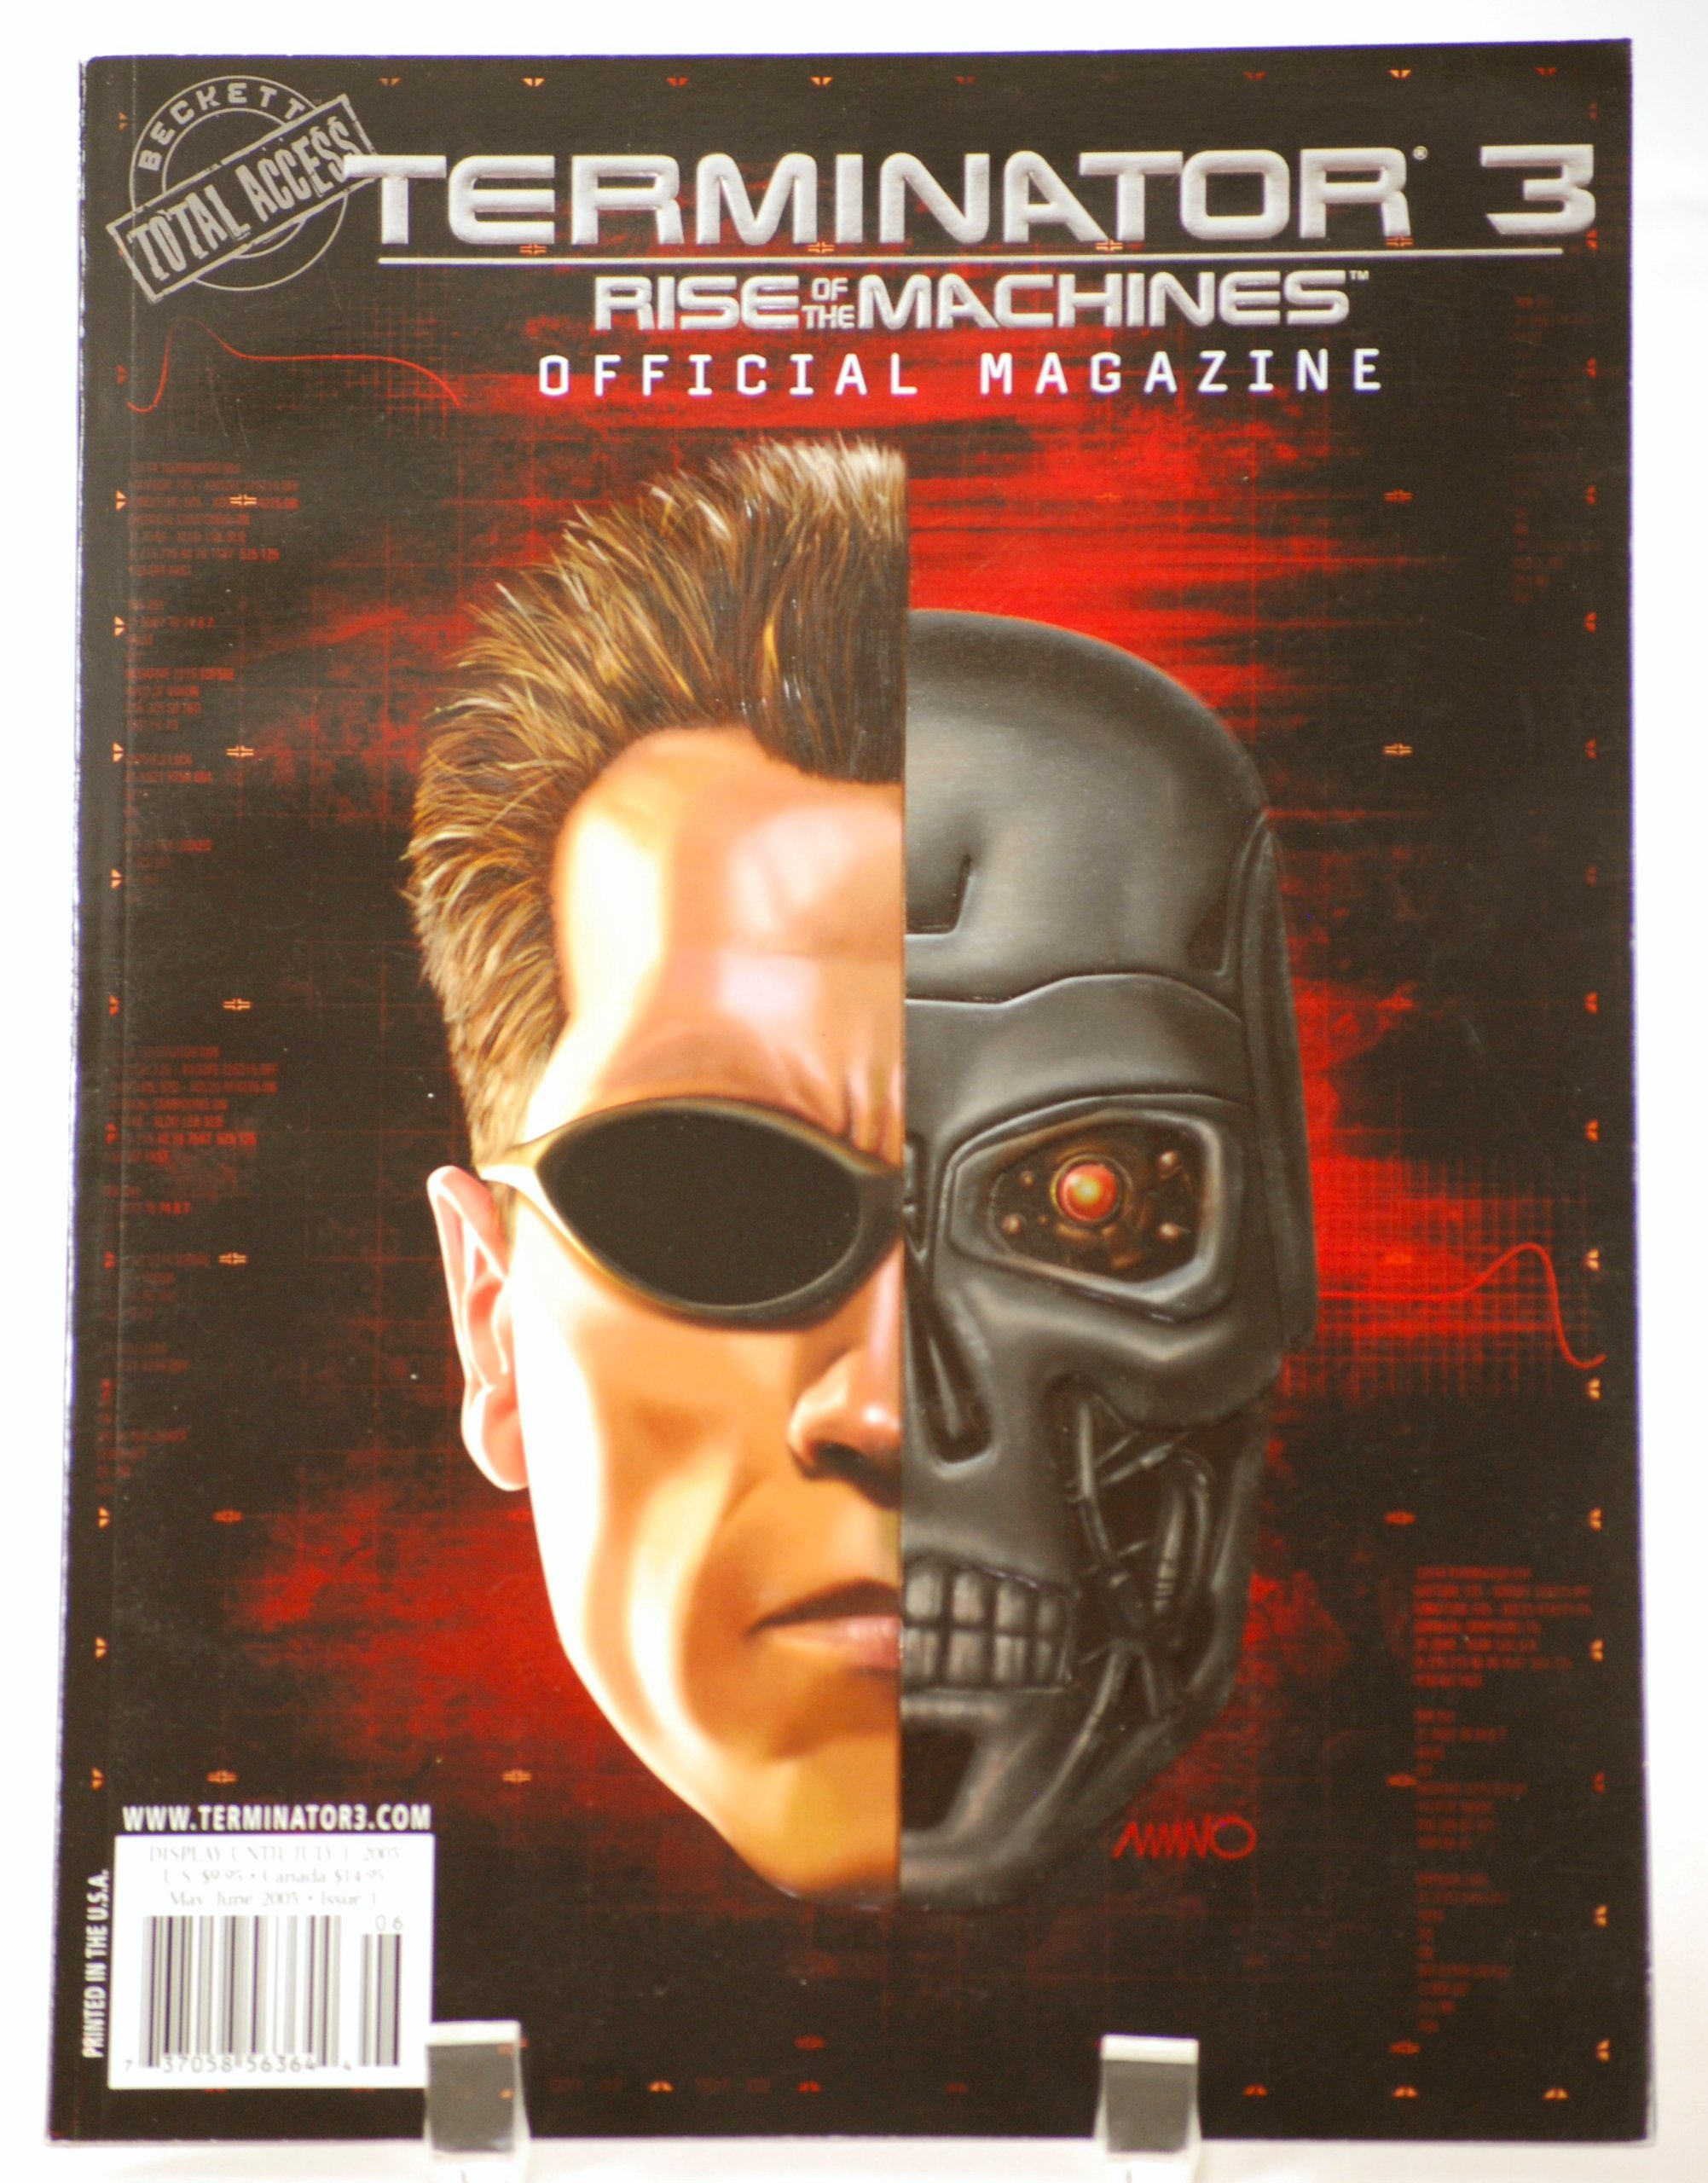 Terminator 3 - Rise of the Machines - Official Magazine - Vol. 1 No. 1 ebook